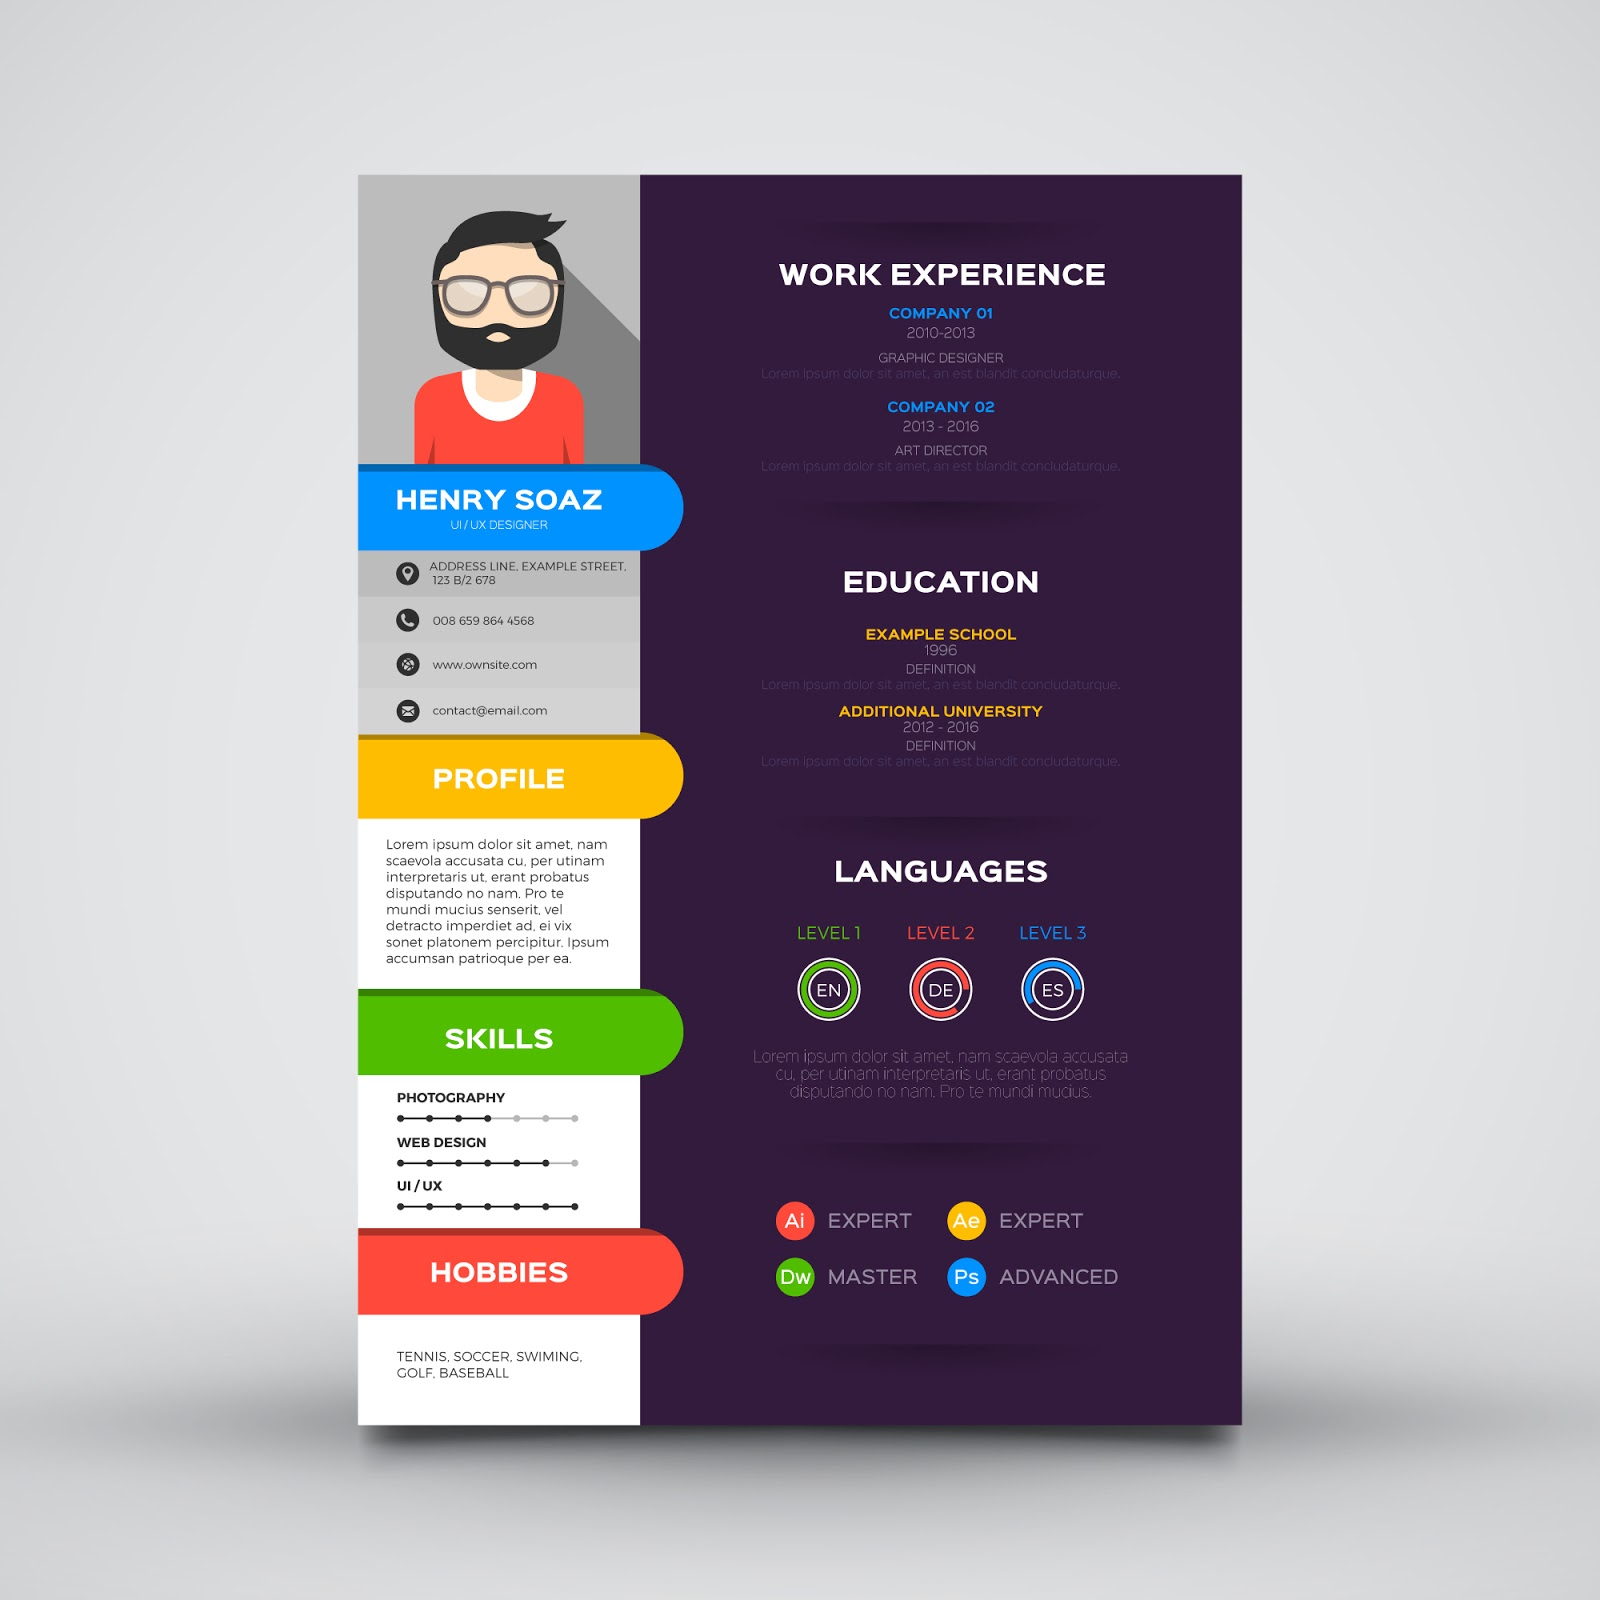 Free download template cv keren guru corel for Personal profile design templates